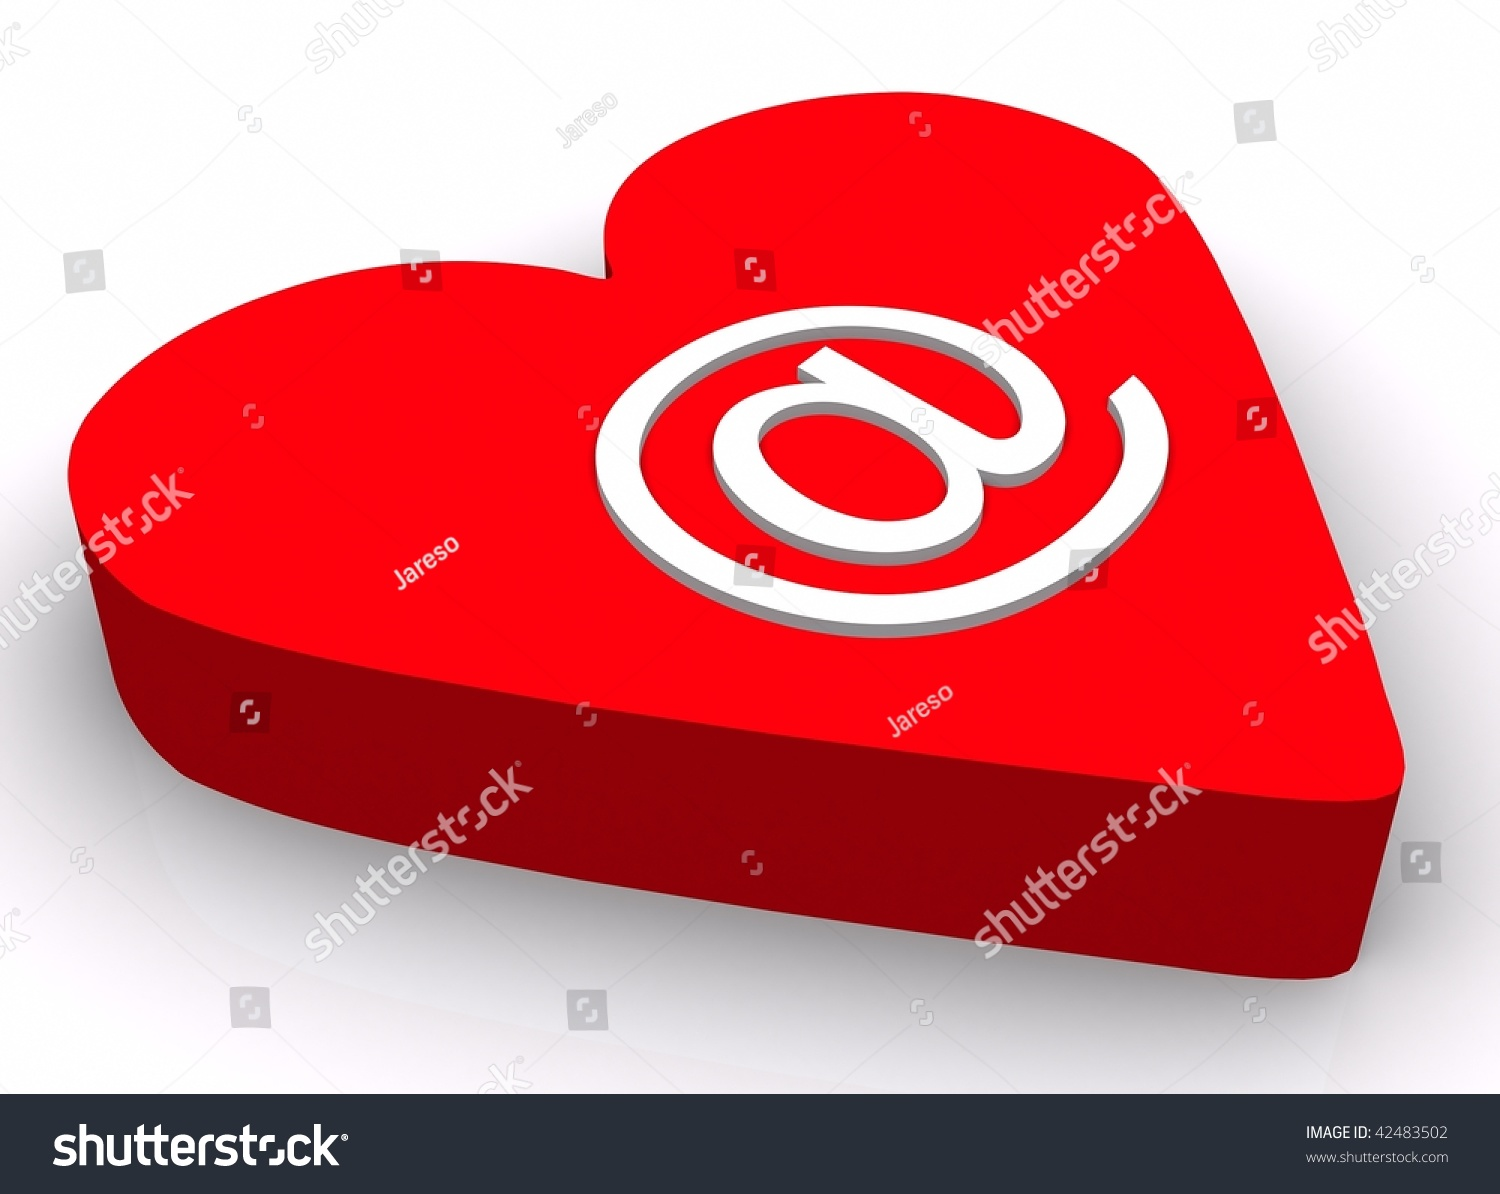 Love message concept red heart email stock illustration 42483502 love message concept red heart with email symbol biocorpaavc